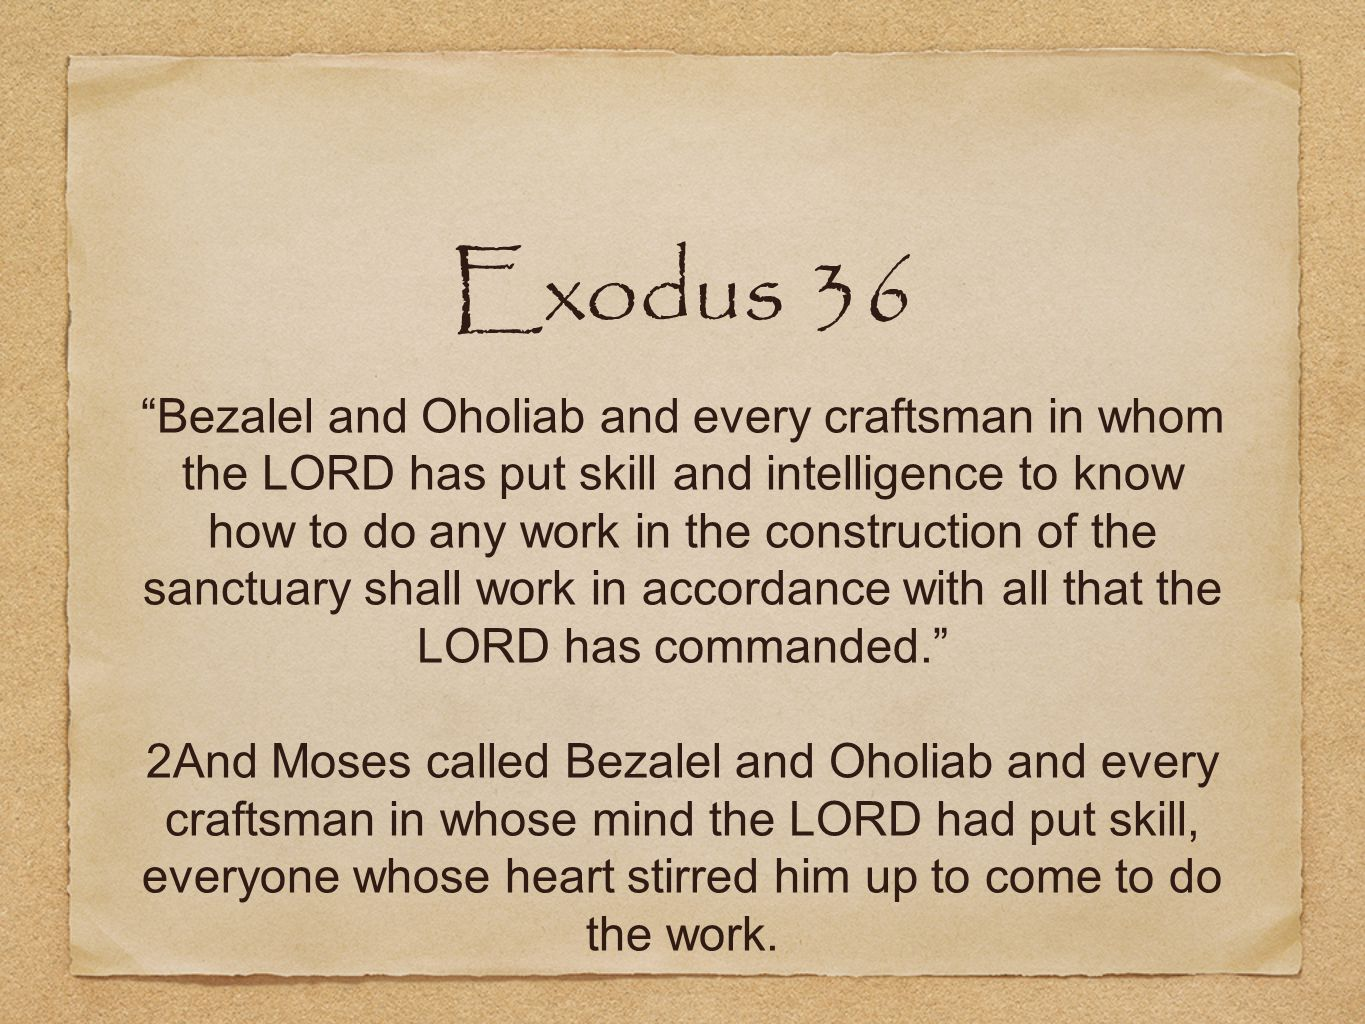 Exodus 36 Bezalel and Oholiab and every craftsman in whom the LORD has put skill and intelligence to know how to do any work in the construction of the sanctuary shall work in accordance with all that the LORD has commanded. 2And Moses called Bezalel and Oholiab and every craftsman in whose mind the LORD had put skill, everyone whose heart stirred him up to come to do the work.